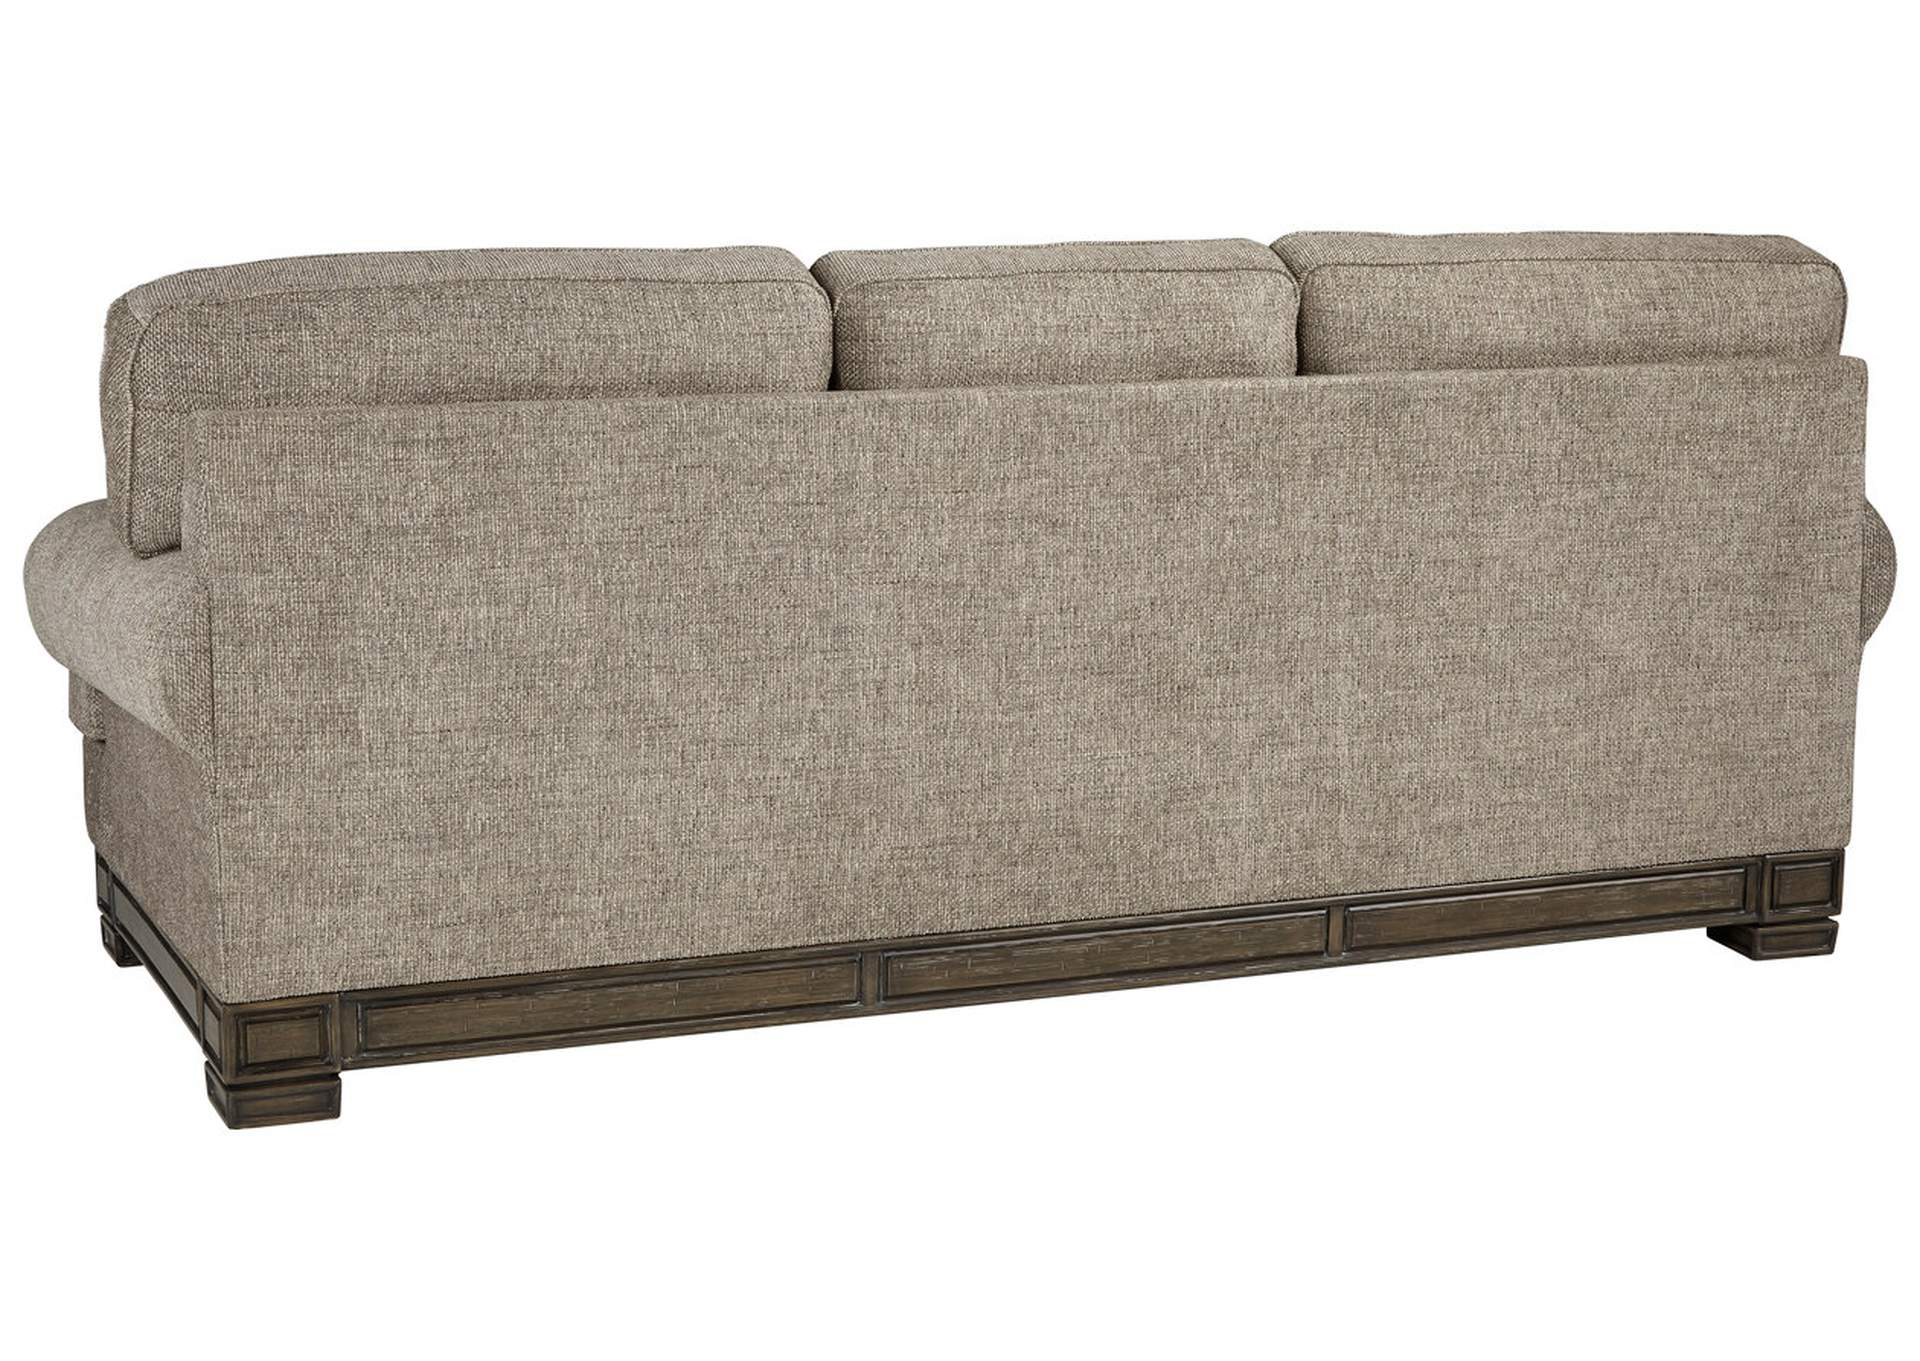 Einsgrove Sandstone Sofa,Signature Design By Ashley